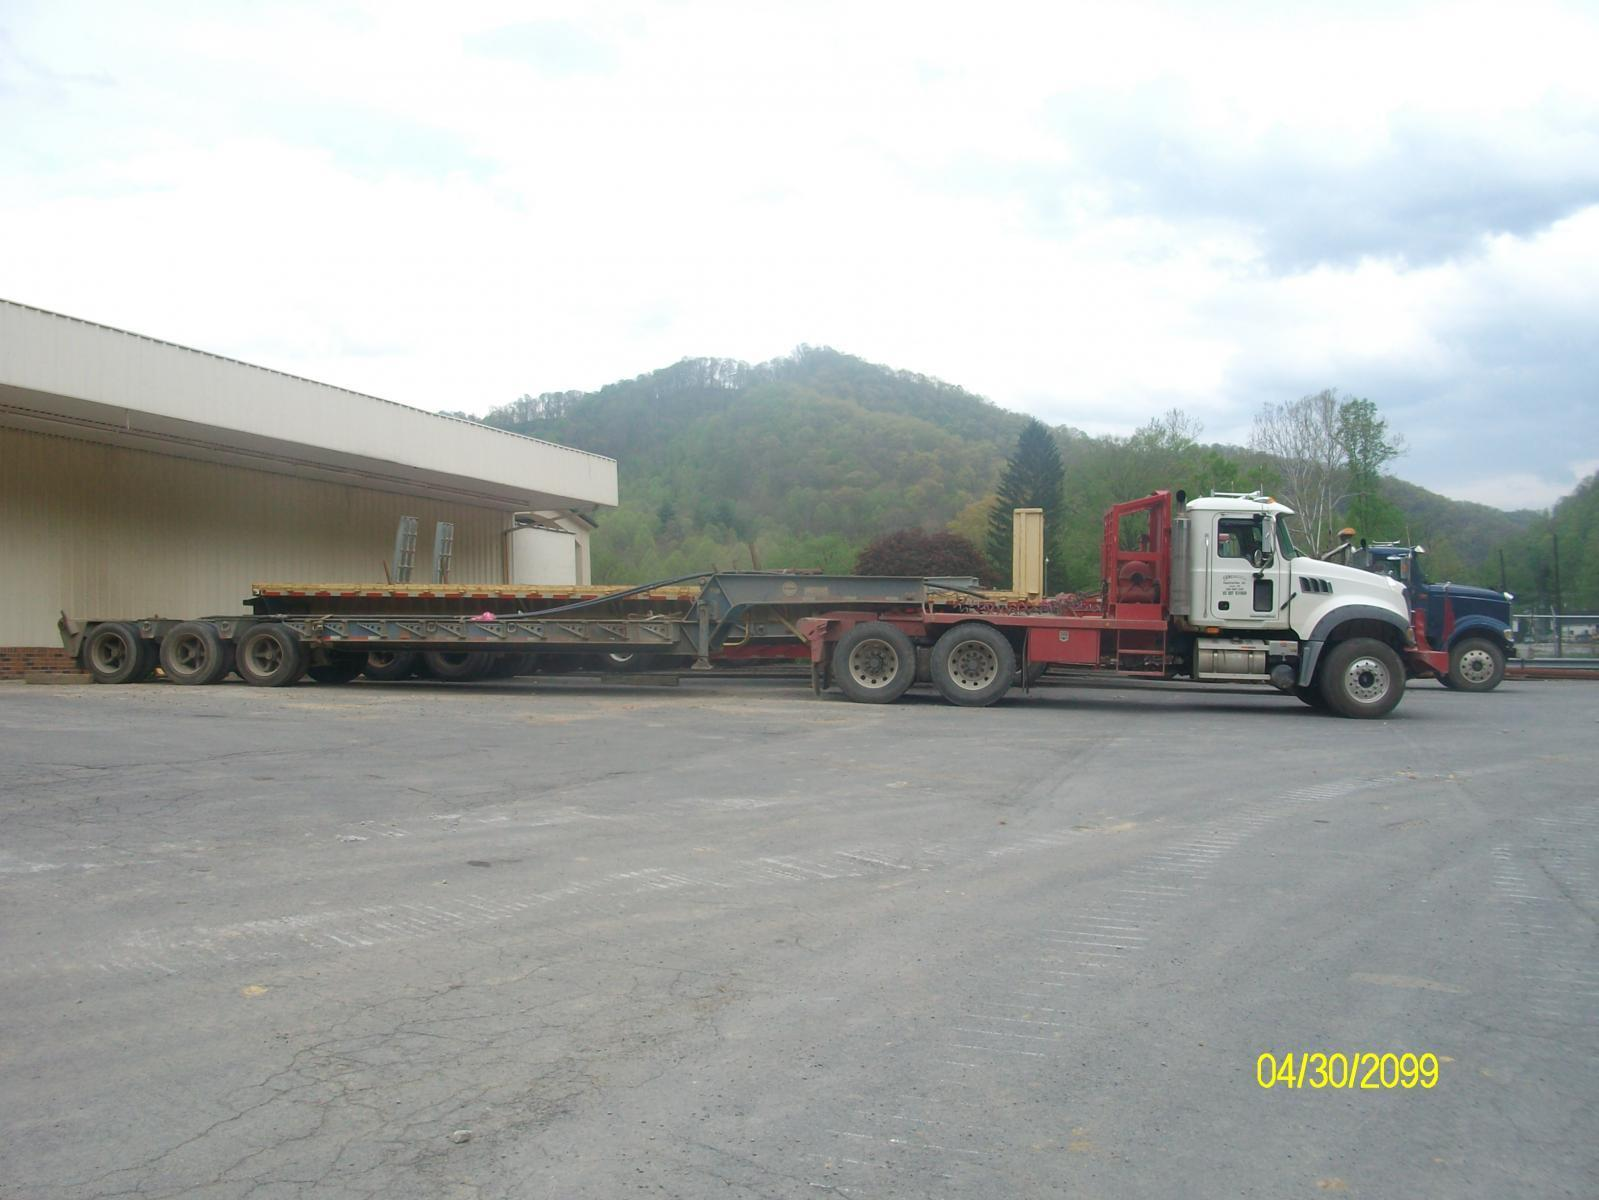 my truck with a lowboy